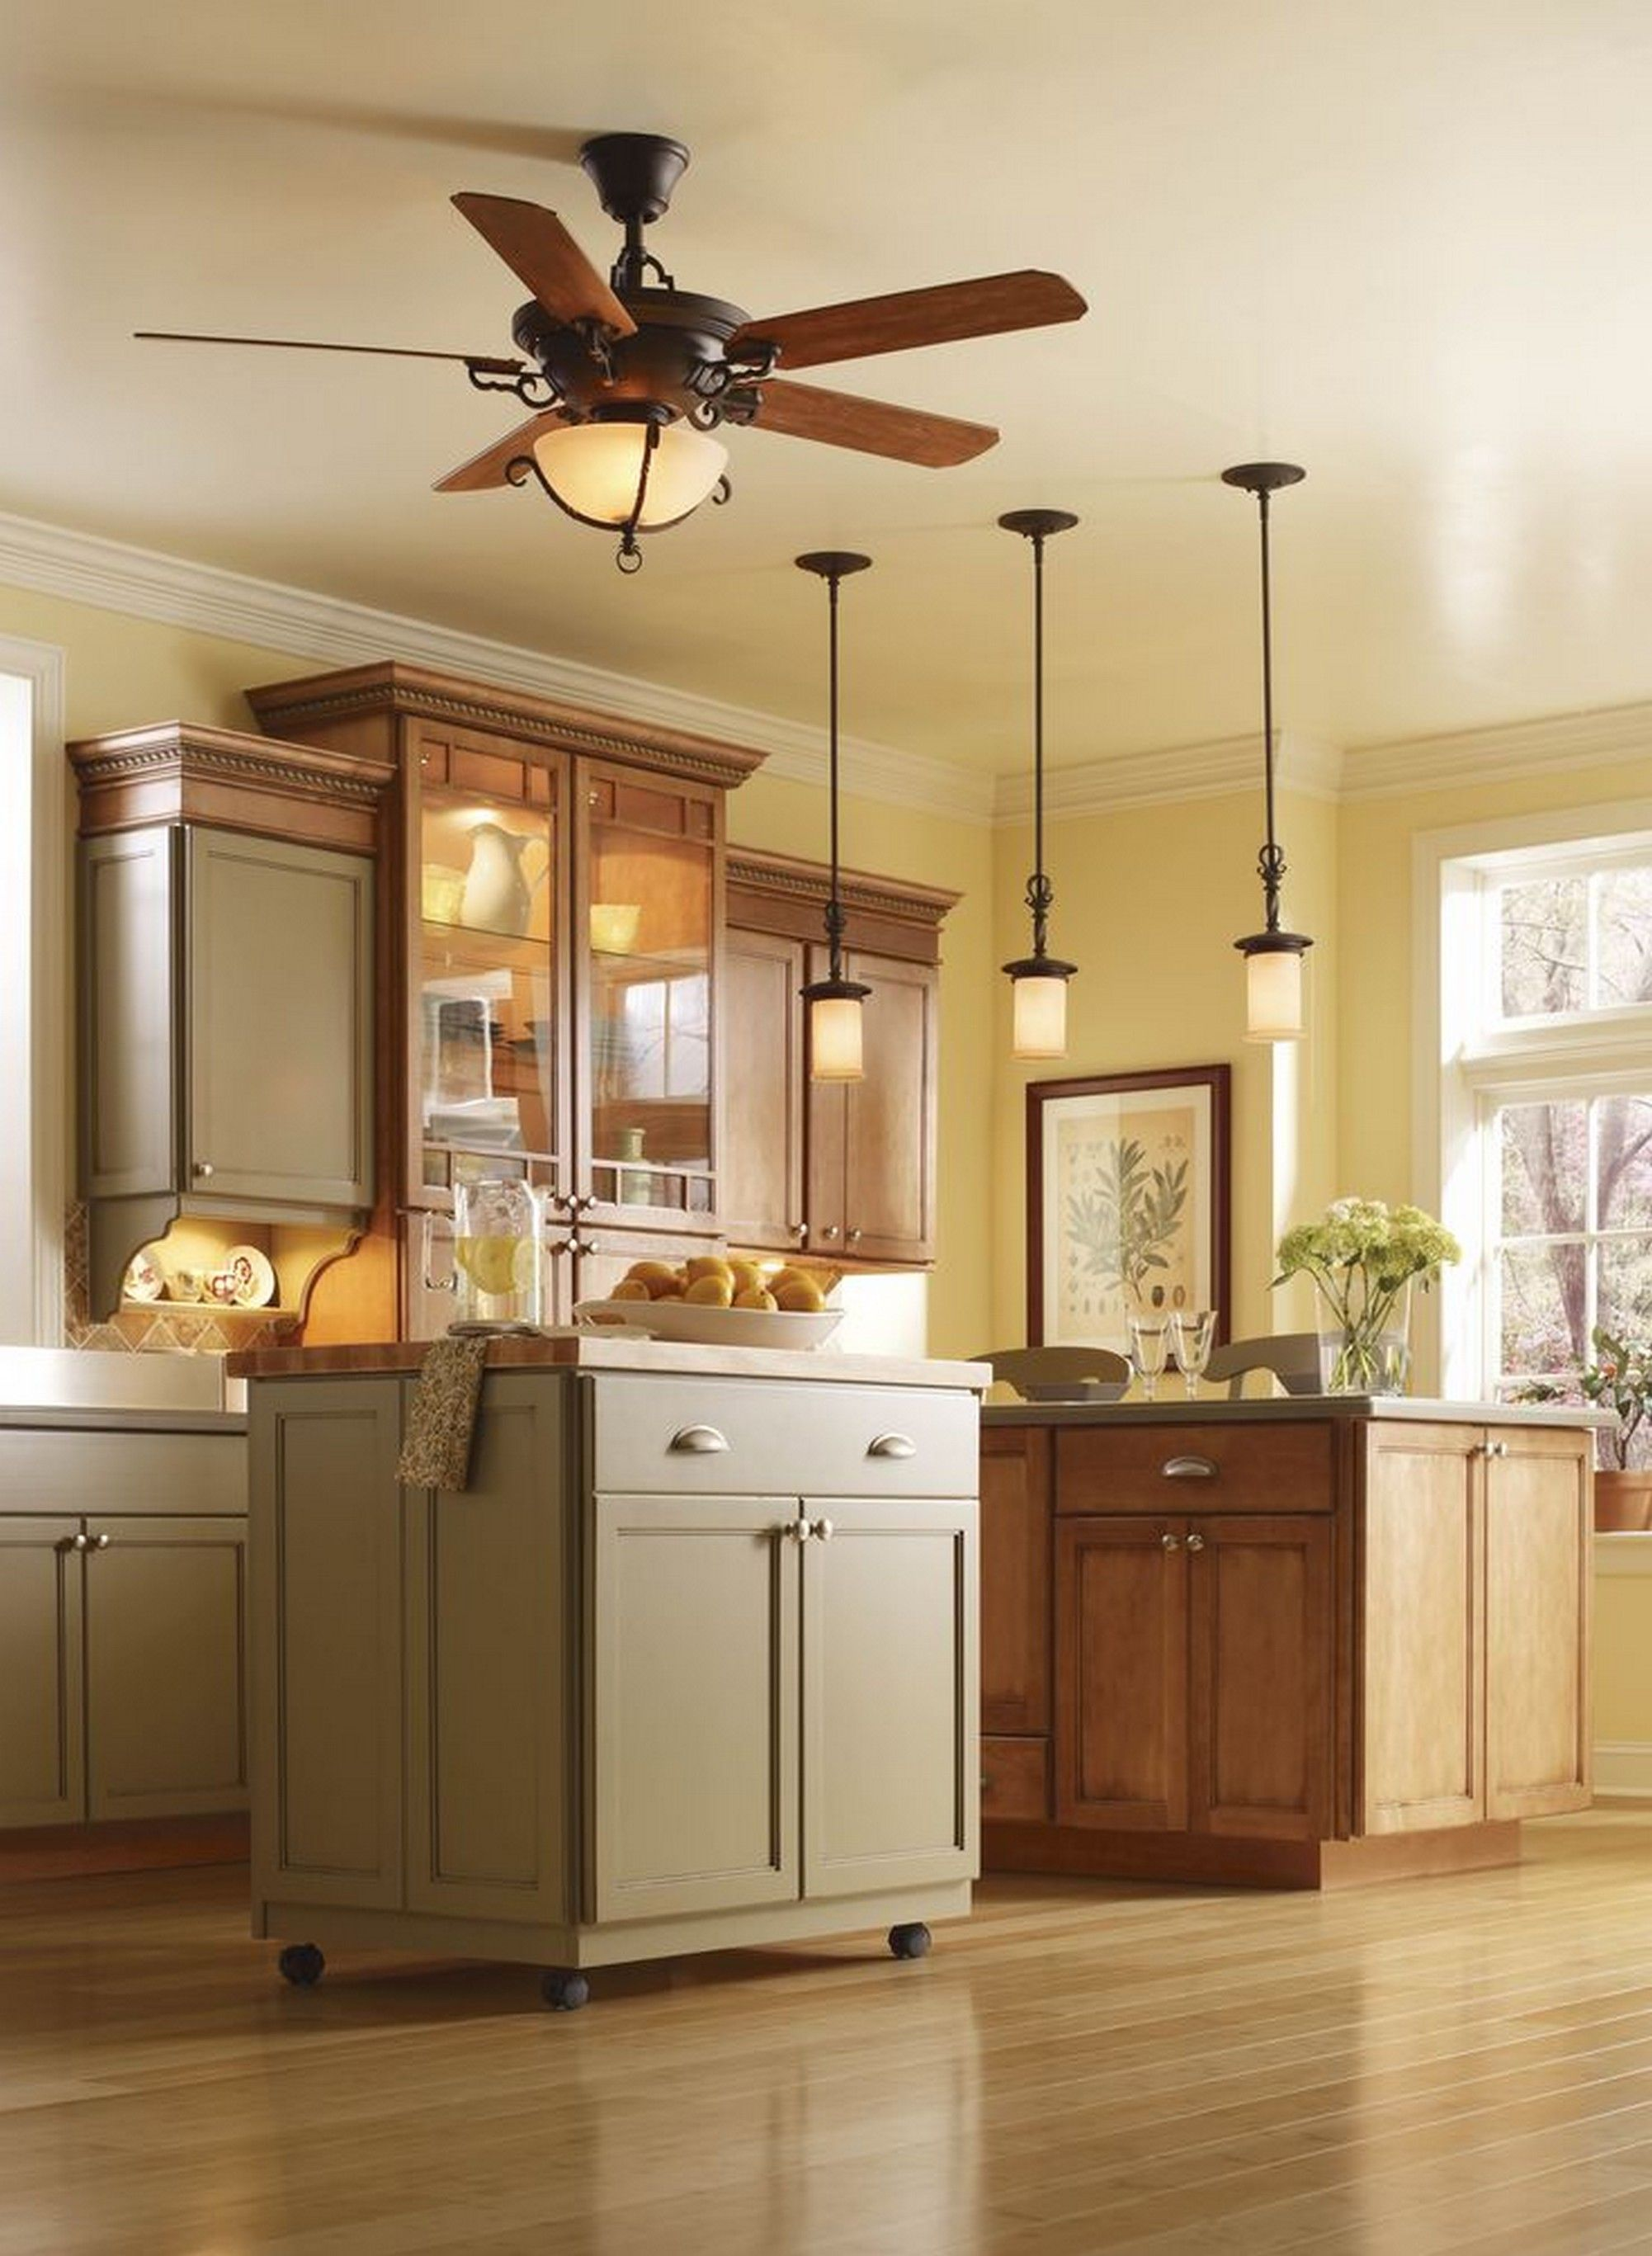 Kitchen Ceiling Fans Free Standing Cabinet Small Island Under Awesome Lights With Wooden Fan On Cream